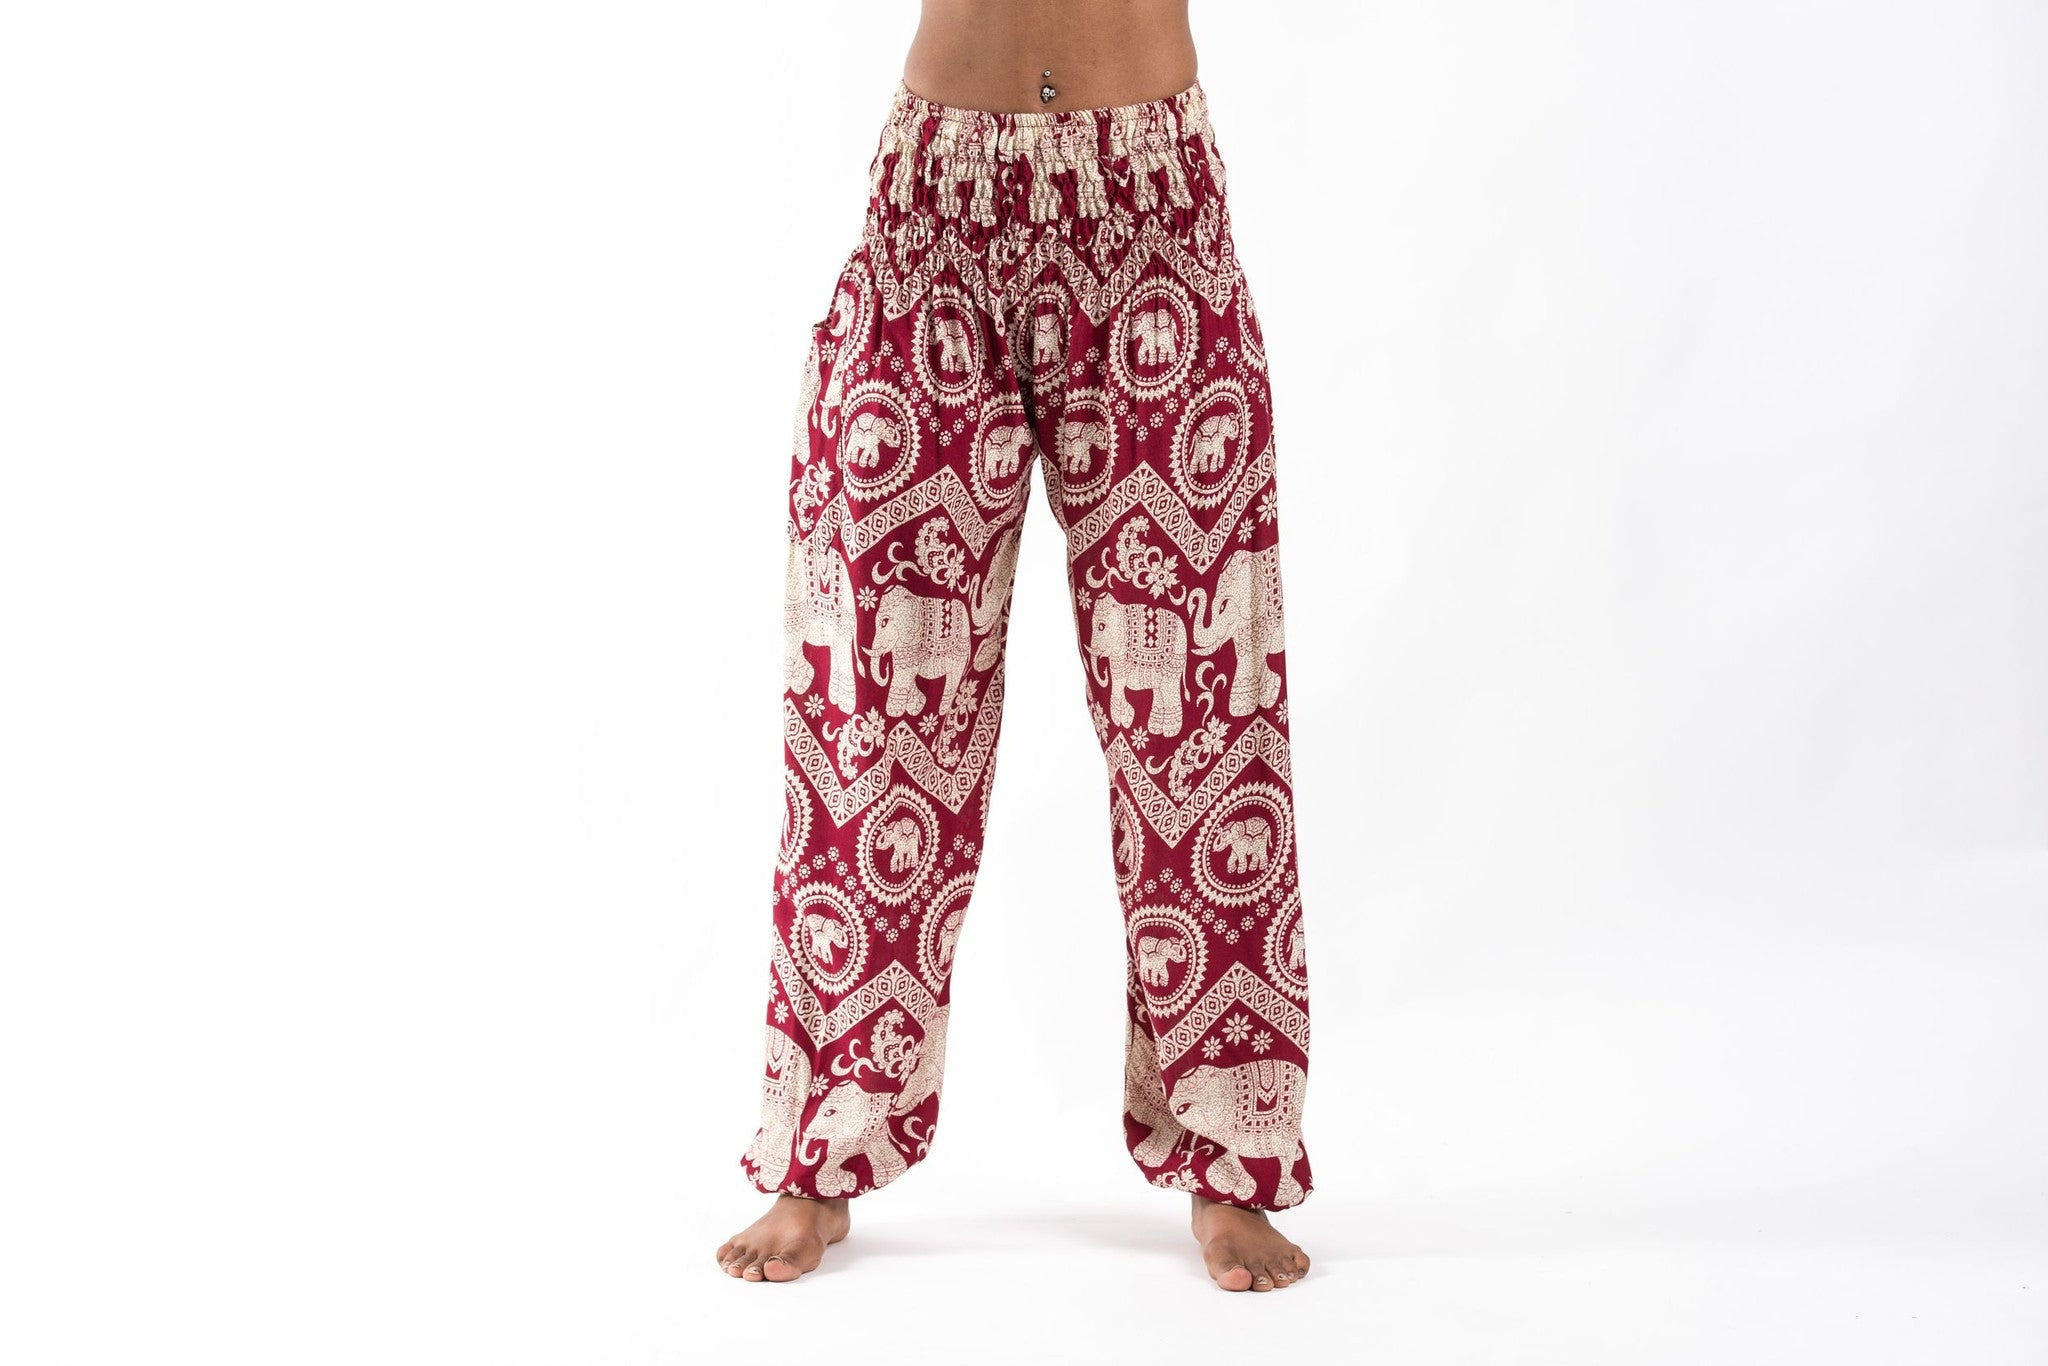 One Tribe Apparel harem pants for women provide the ultimate in comfort and come in multiple styles and colors ranging from black to white to turquoise. Ideal festival clothing, loved by yogi's in flow and comfortable for traveling, our diverse harem pant collections are guaranteed to .